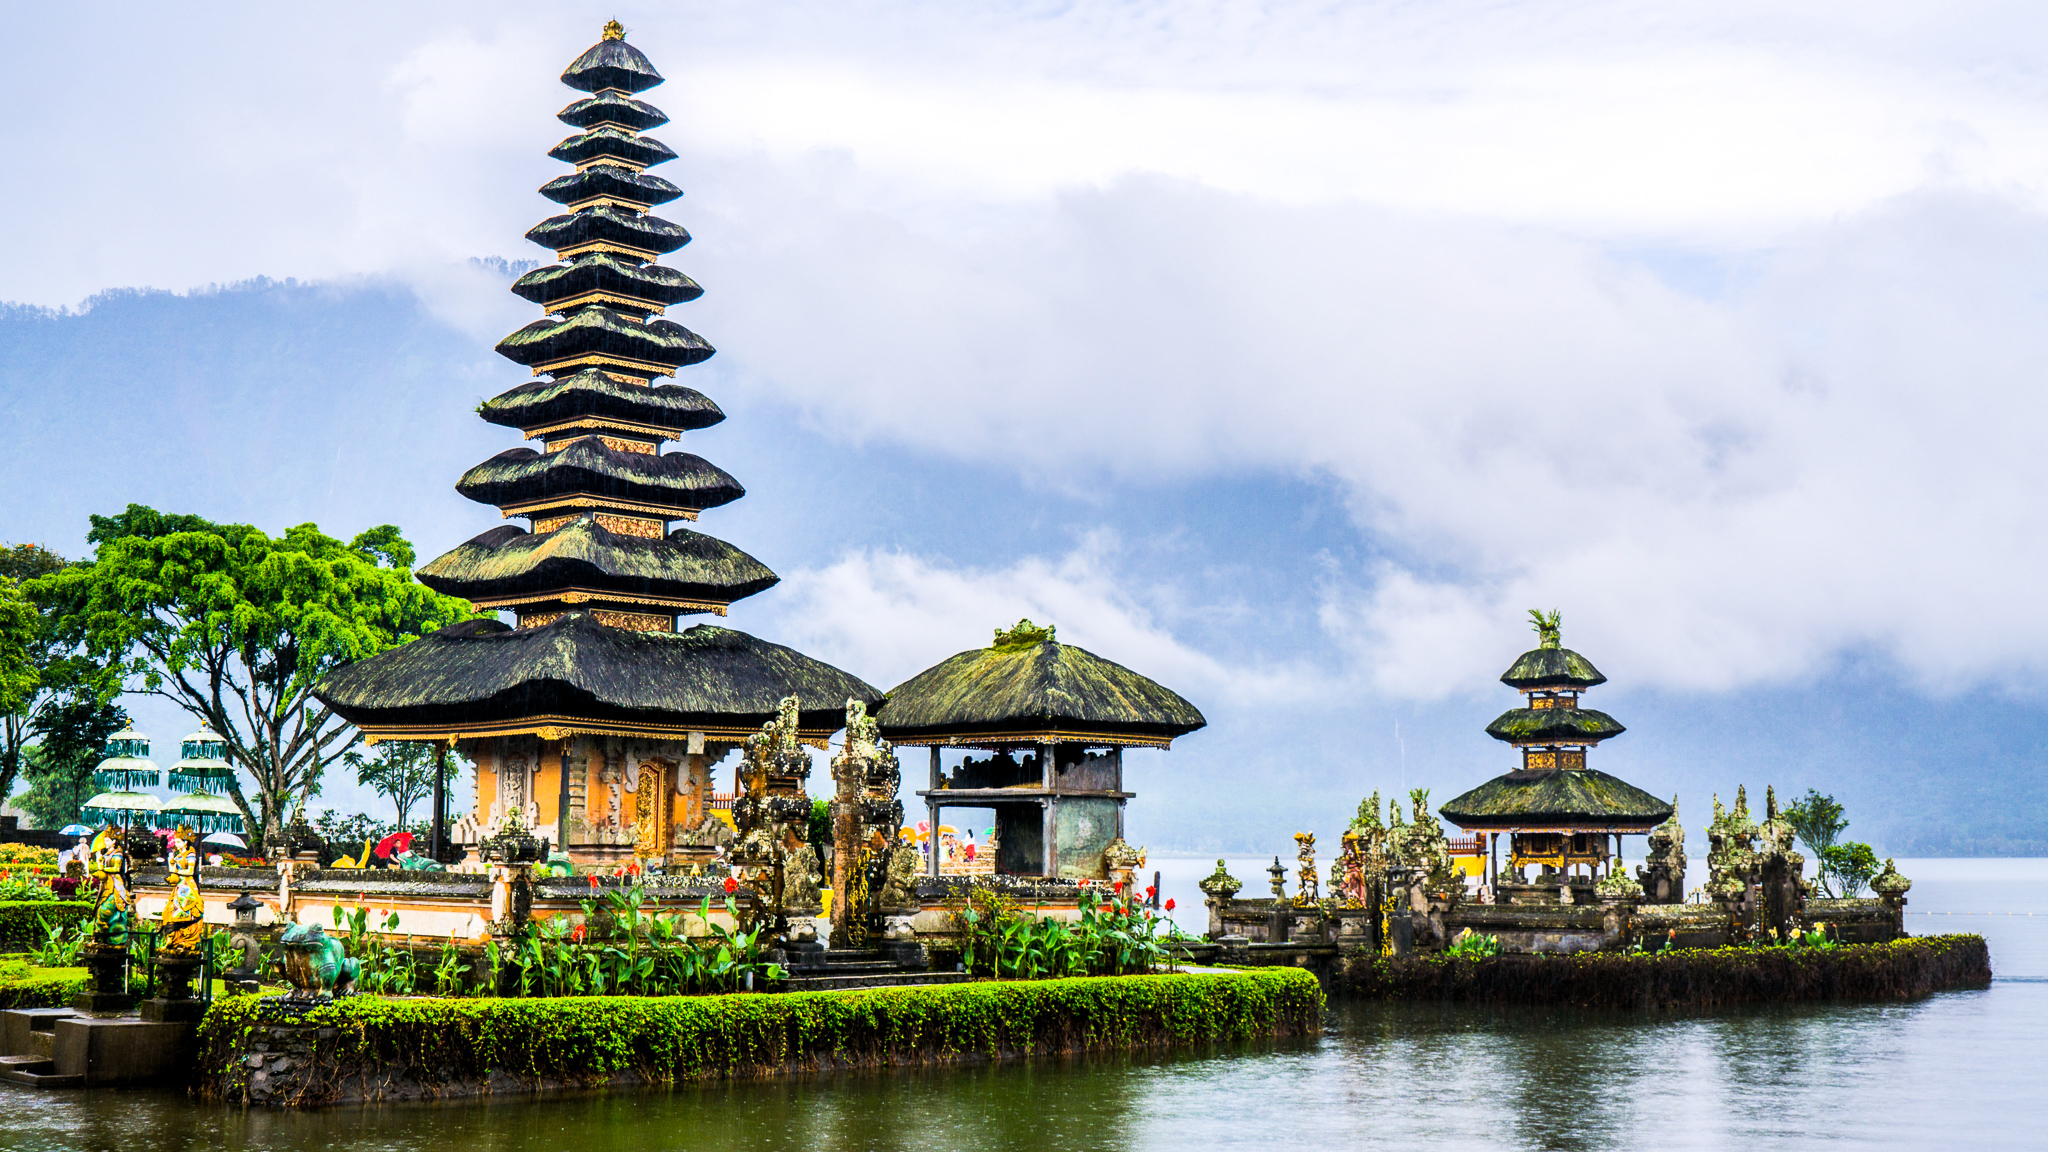 Summer Program - Adventure/Trips | Travel For Teens: Bali Healthcare Education and Medical Outreach